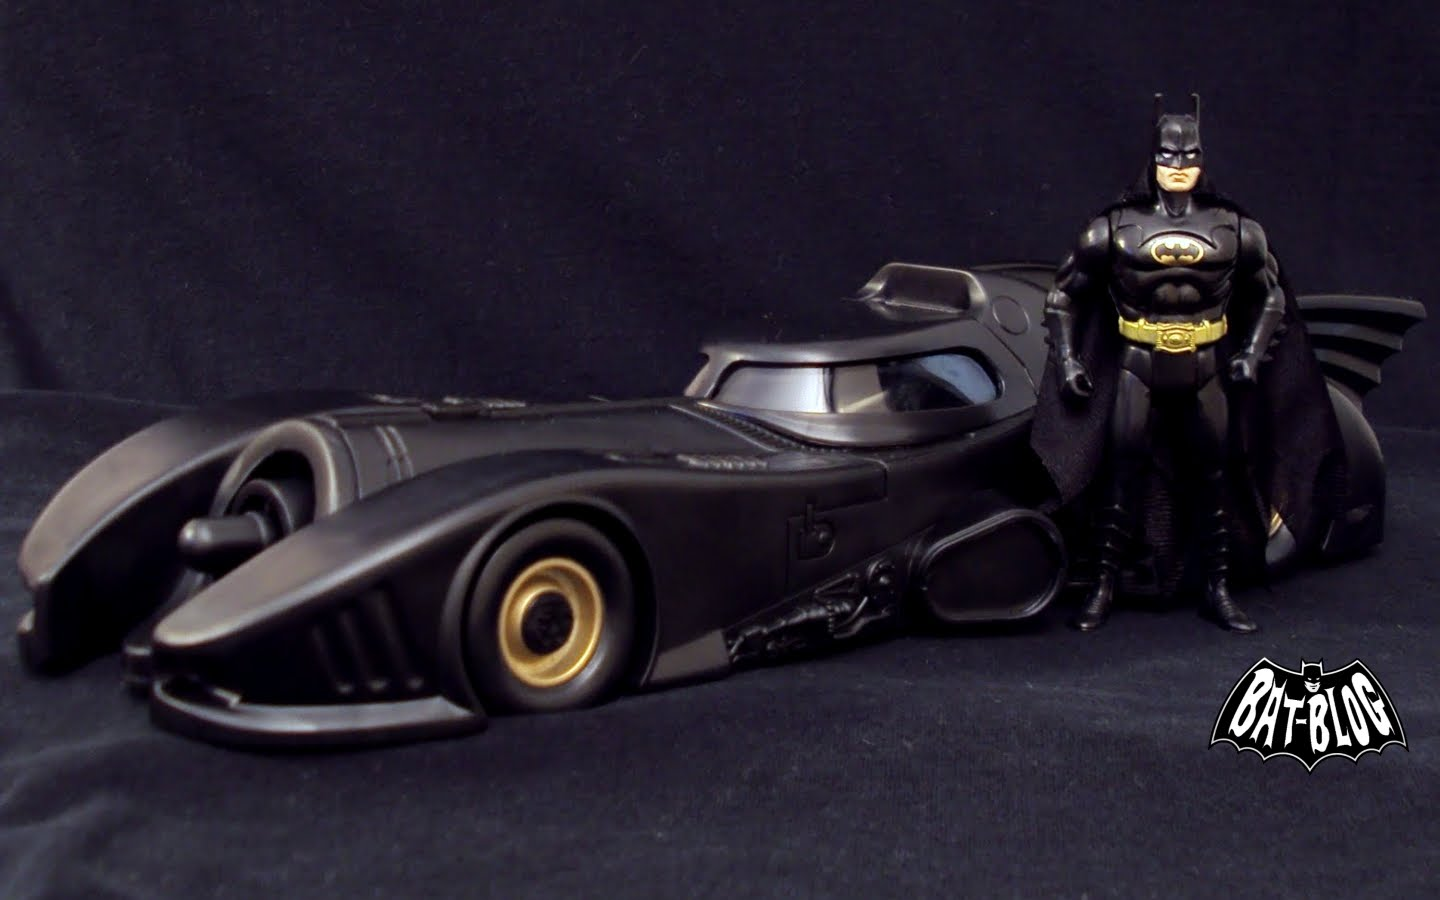 http://3.bp.blogspot.com/_2kjisMm3M9Y/TUmfjiGdqhI/AAAAAAAAOaI/6o6QABdWMlU/s1600/wallpaper-batman-1989-movie-toys.jpg